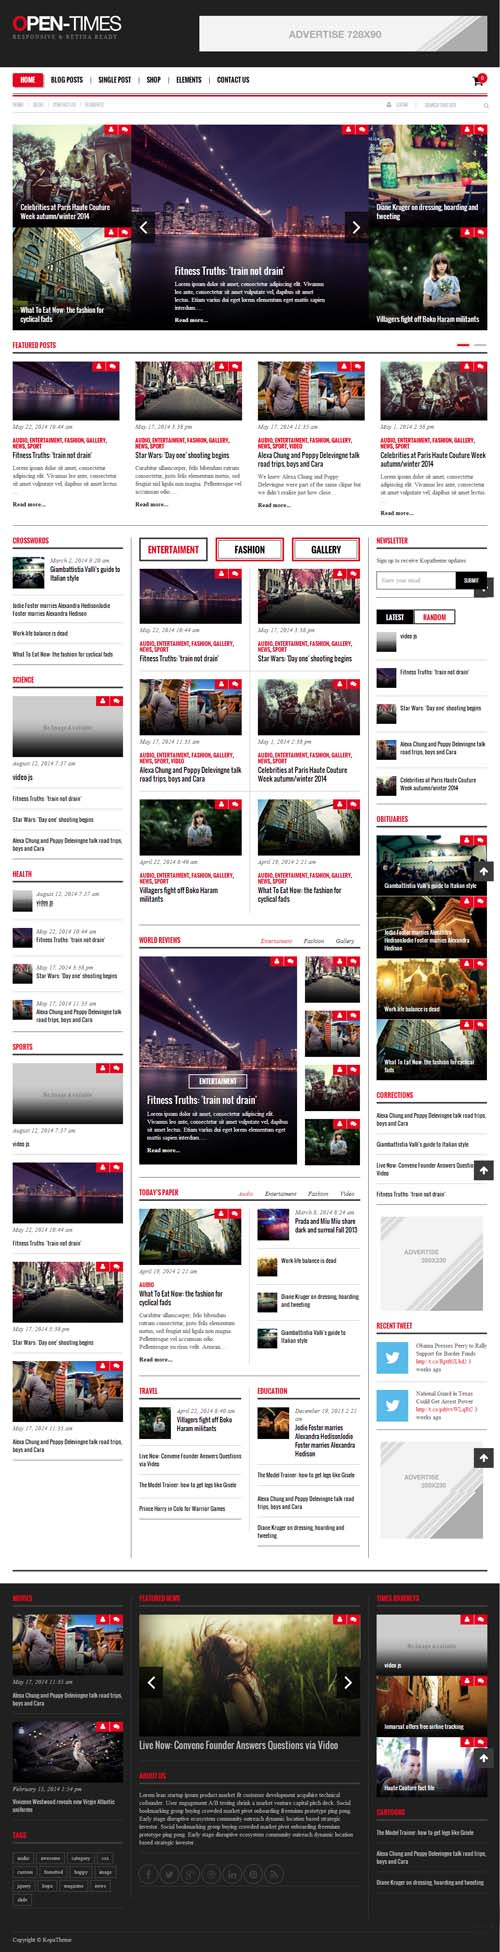 Open Times Magazine WordPress theme